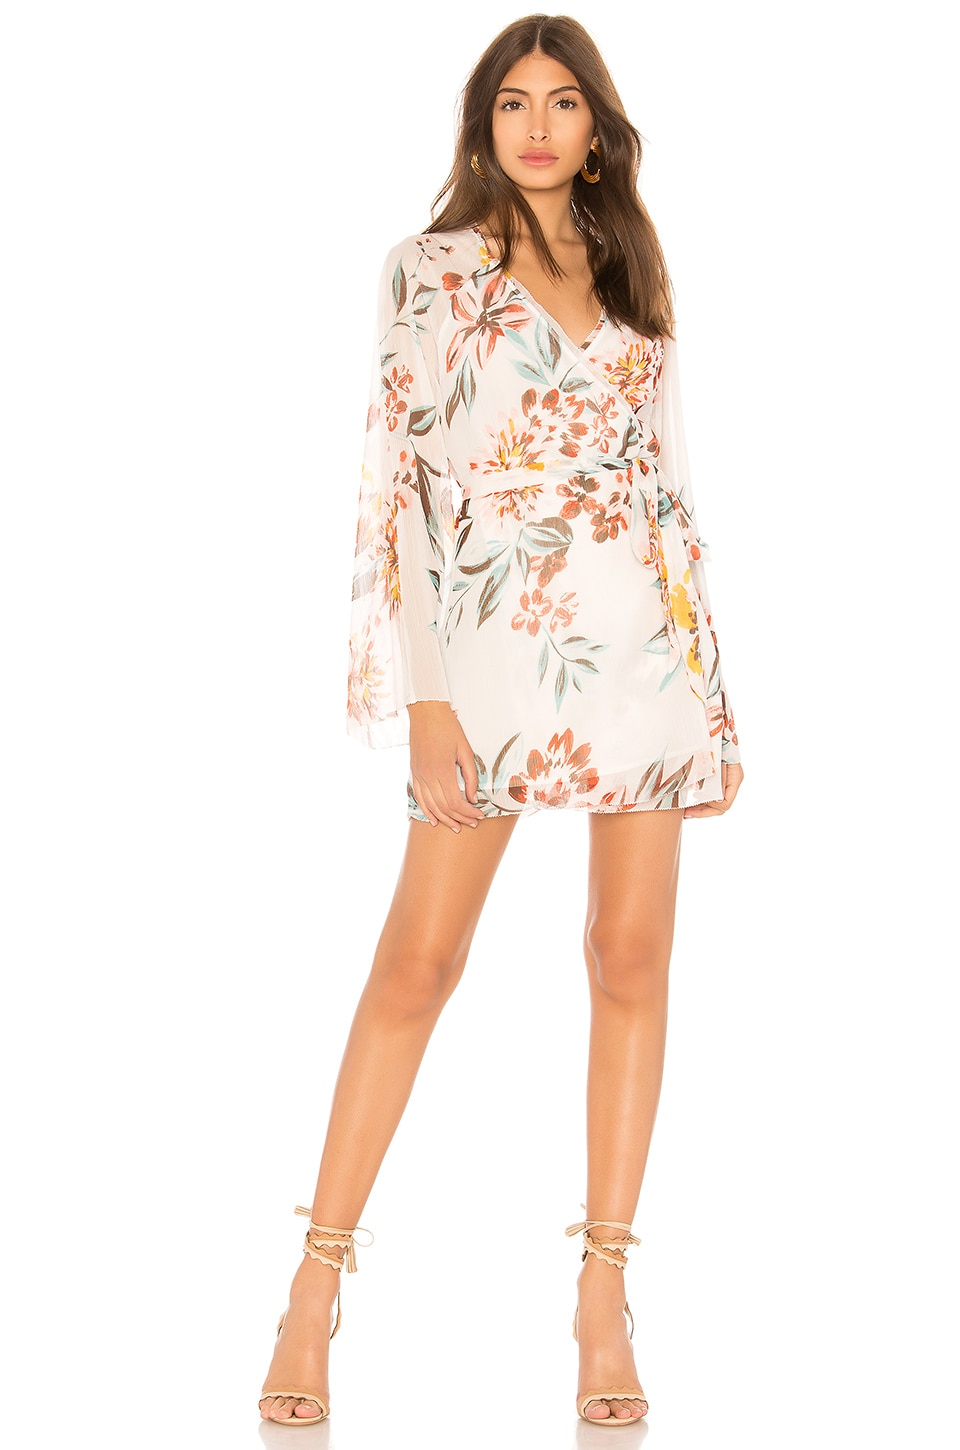 Tularosa Robin Dress in Dahlia Floral